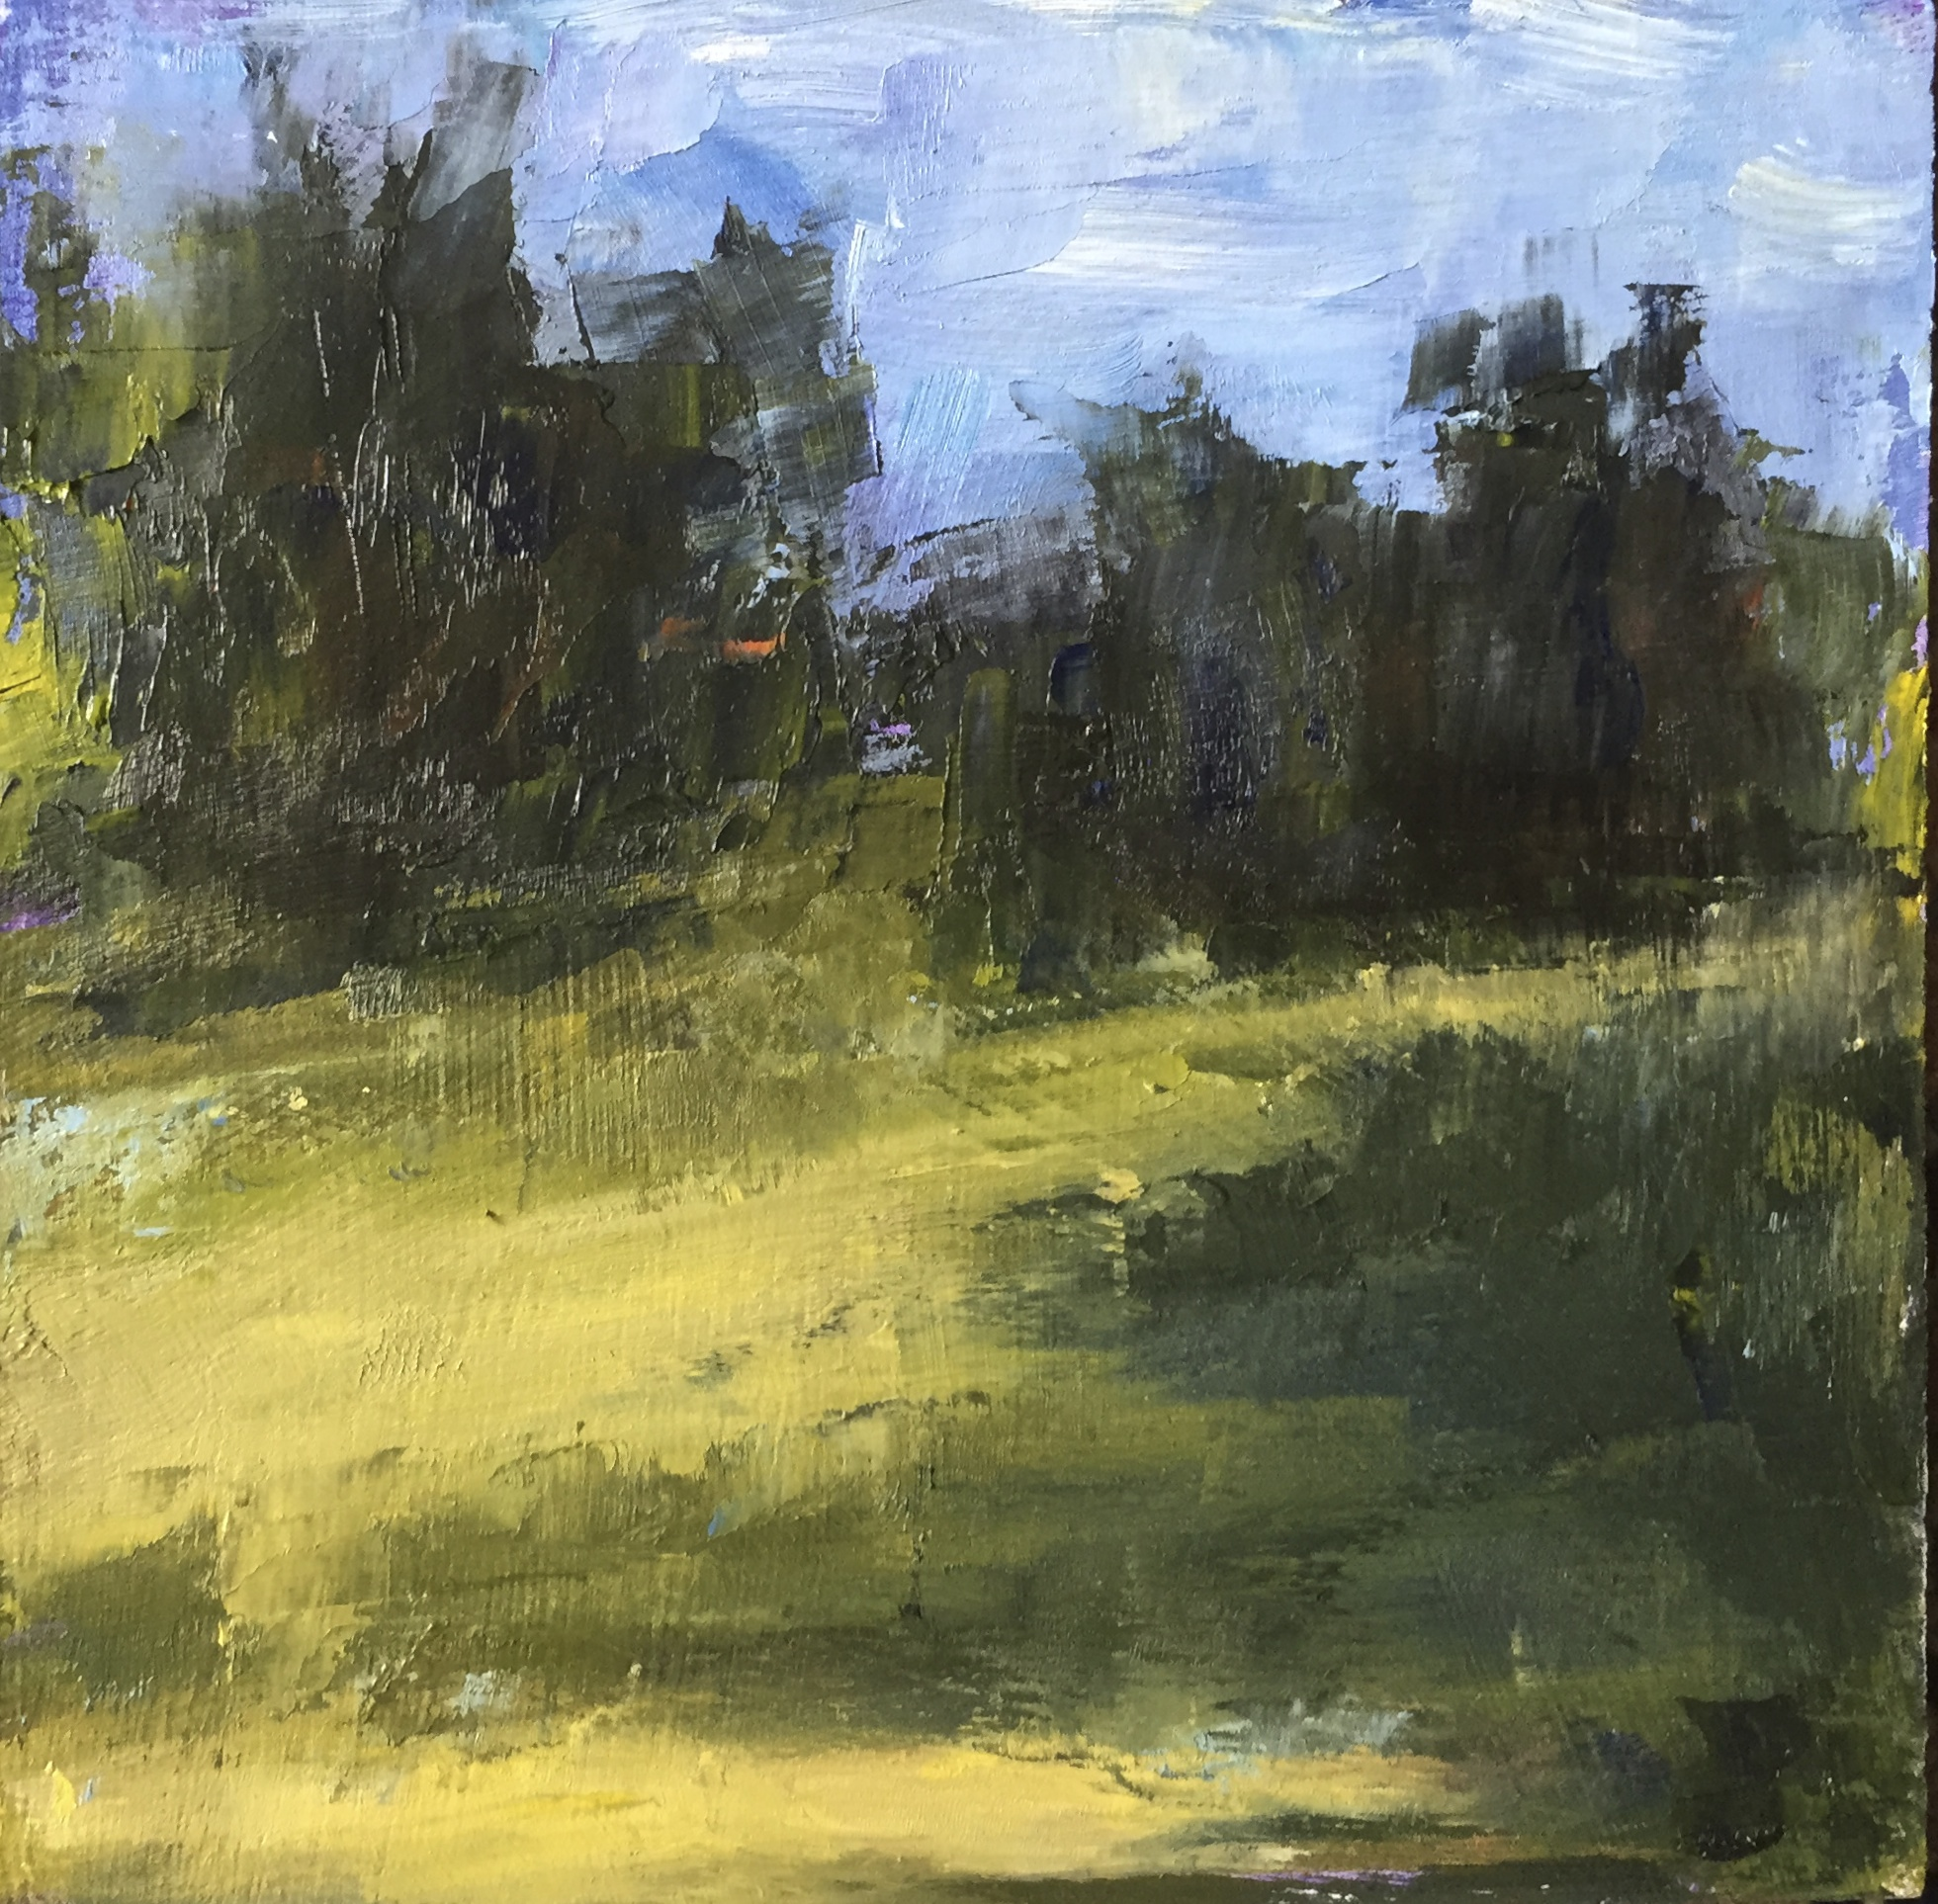 Late Summer Afternoon, Oil on Panel, 6x6